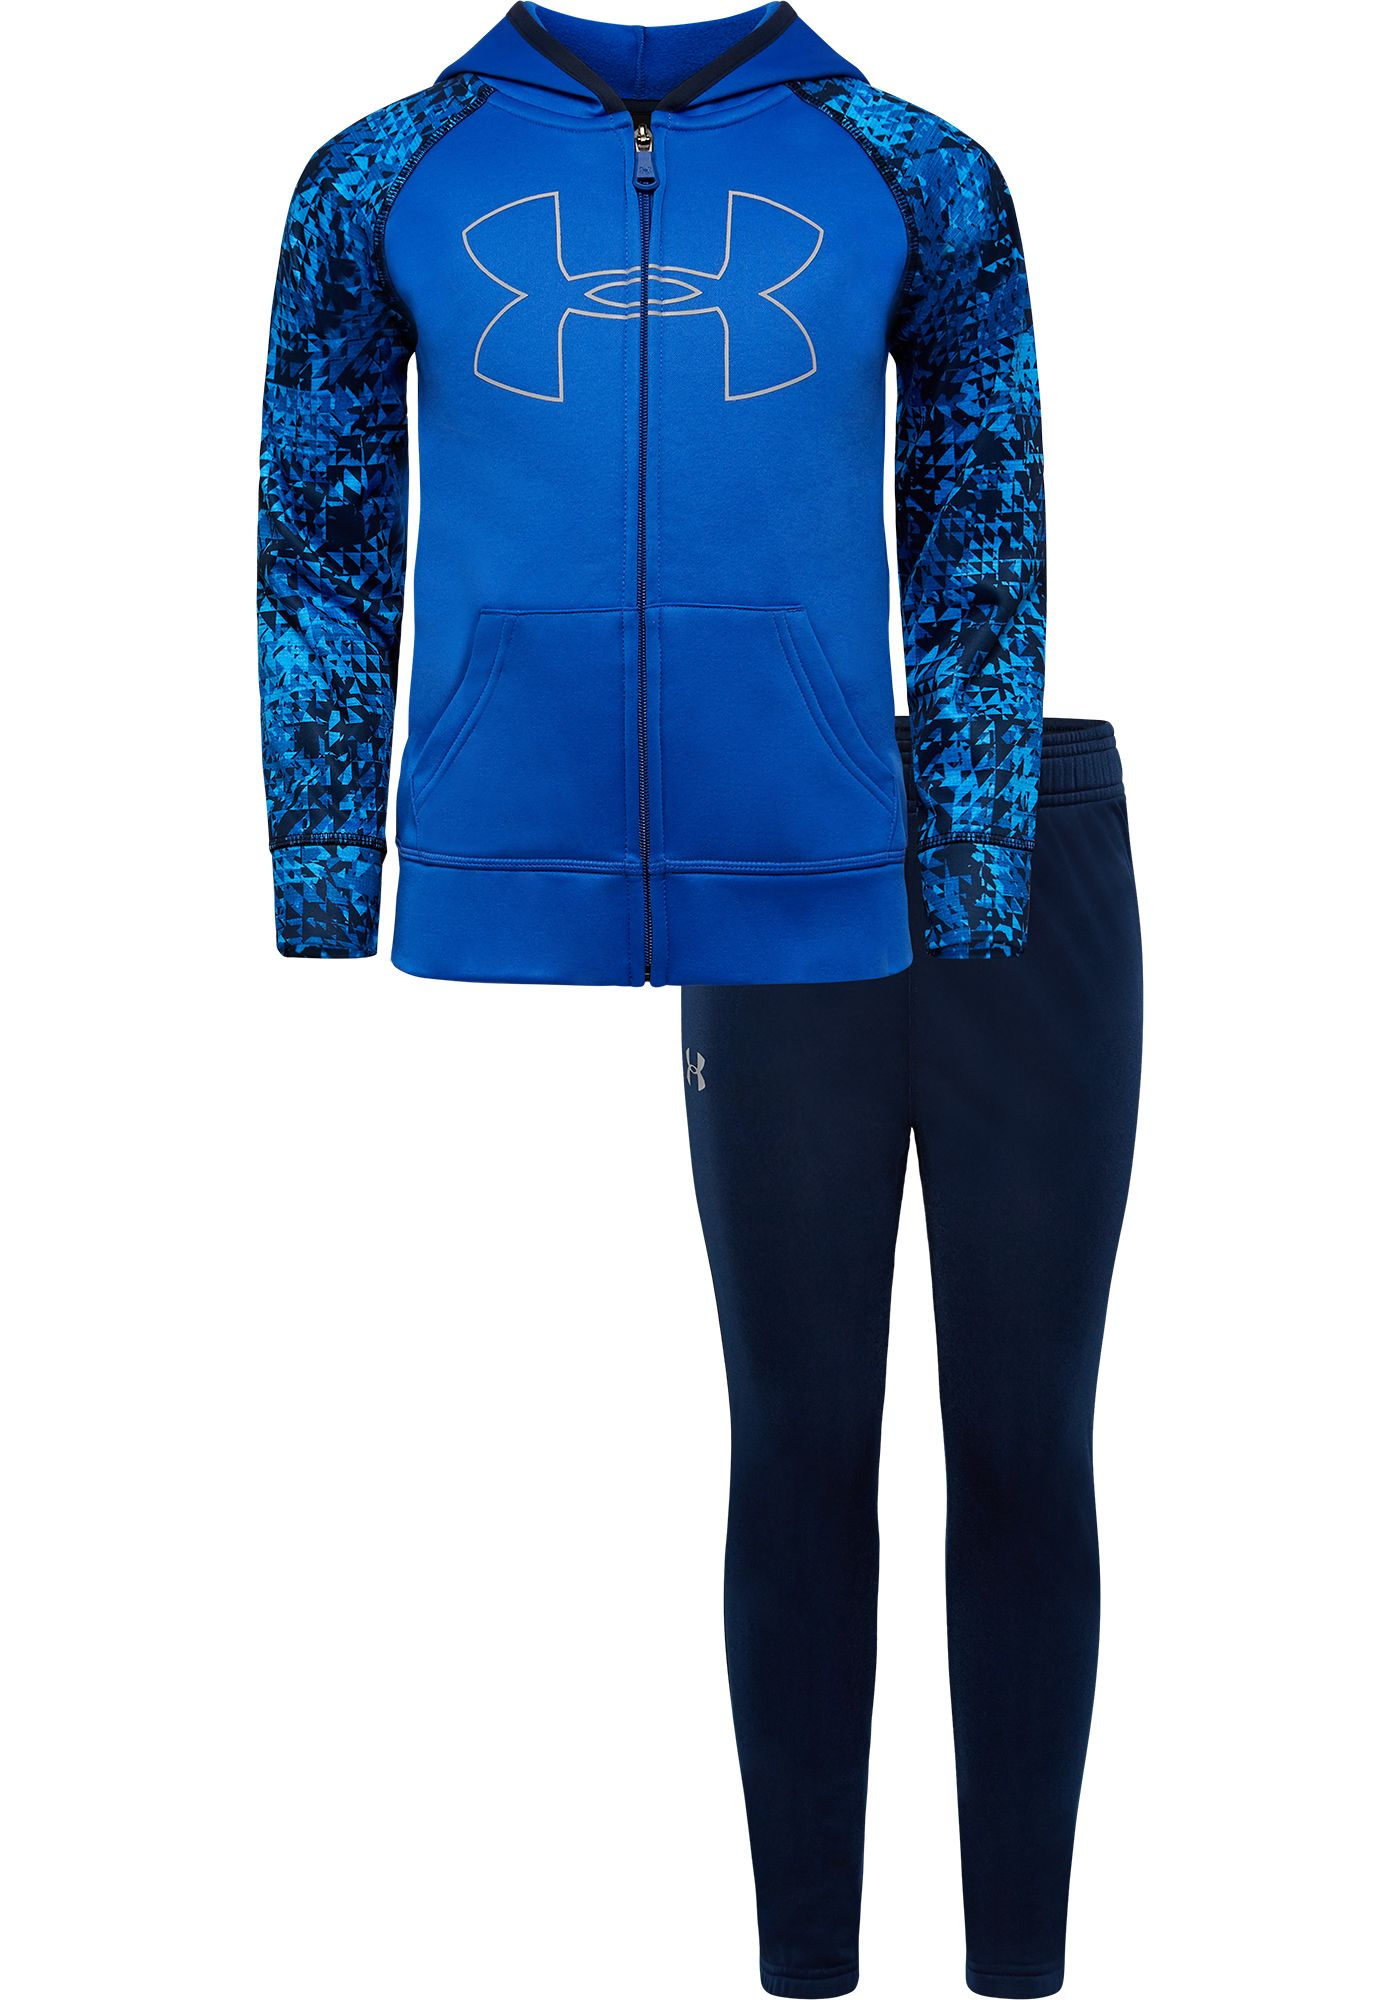 Under Armour Little Boys' Trileido Hoodie and Pants Track Set